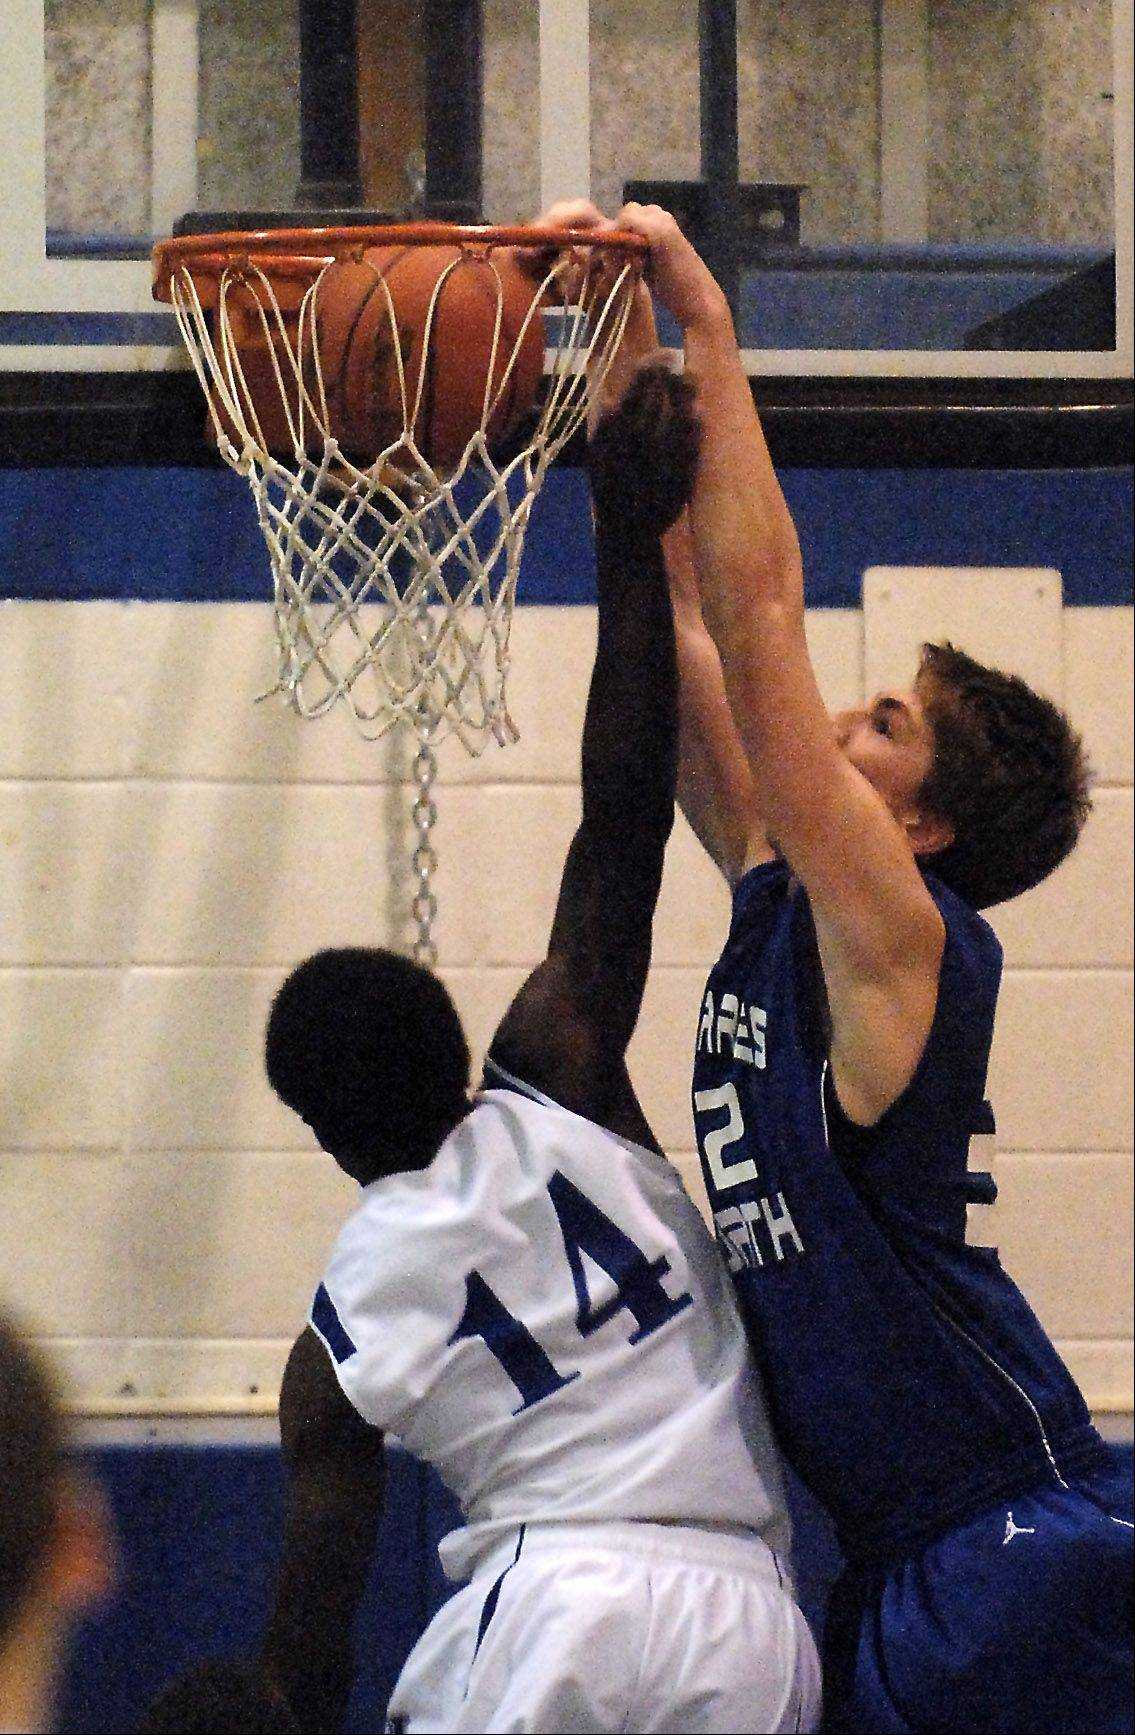 St. Charles North's Kyle Nelson dunks over Larkin's Brent Cooks during Thursday's game at Larkin High School in Elgin.